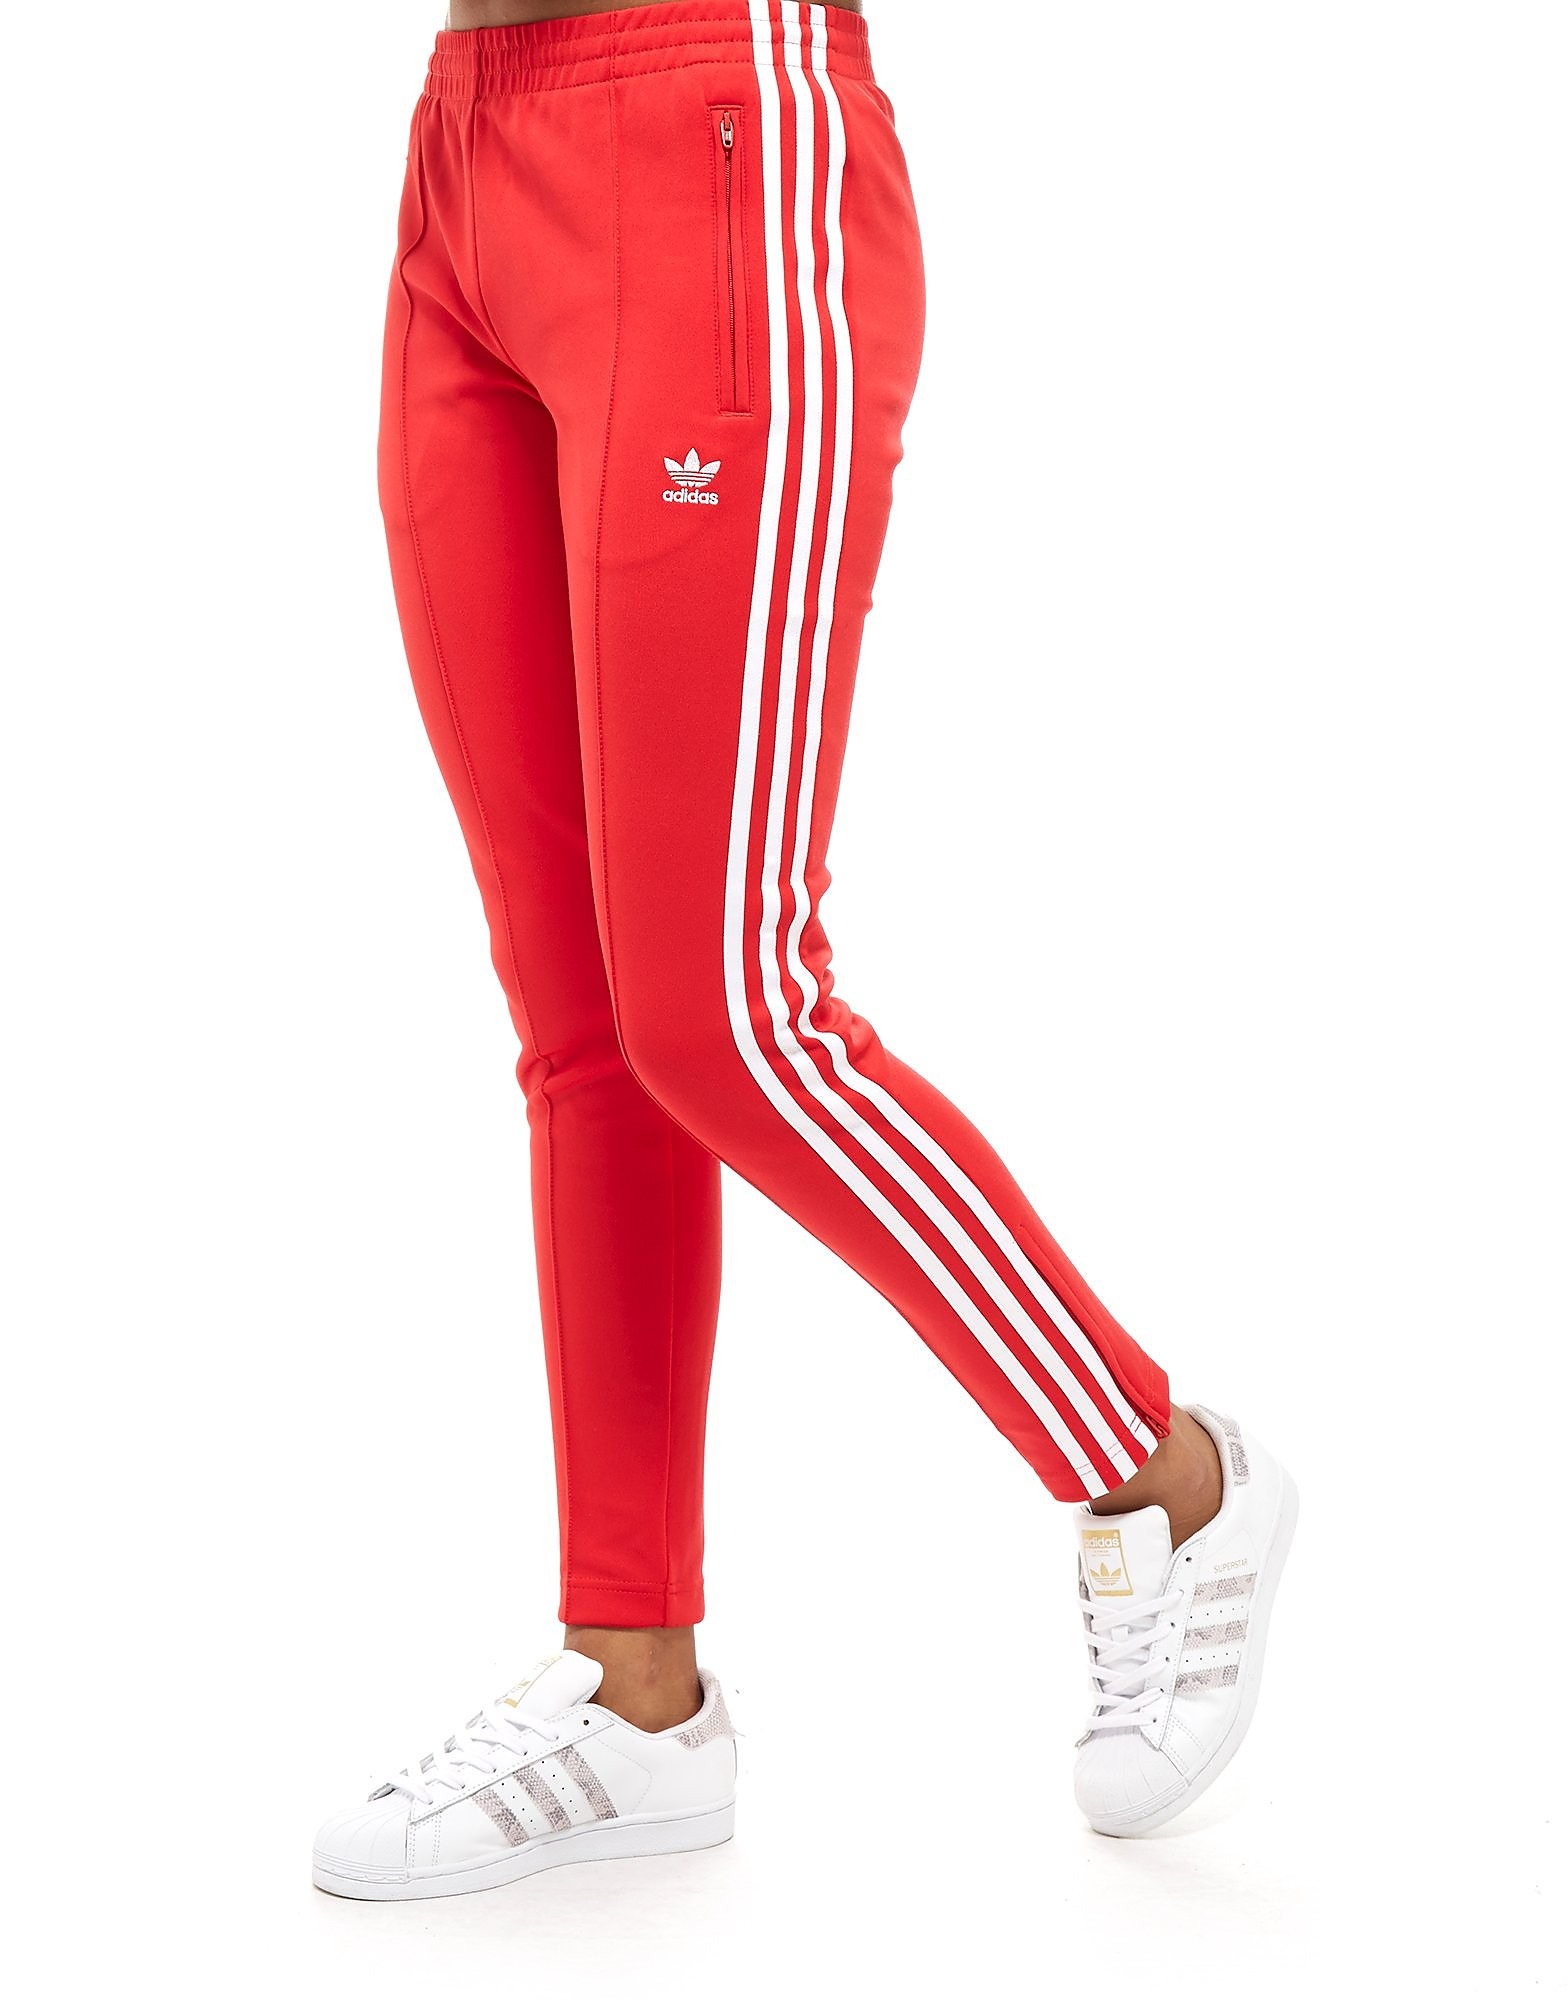 adidas Originals Superstar Track Pants